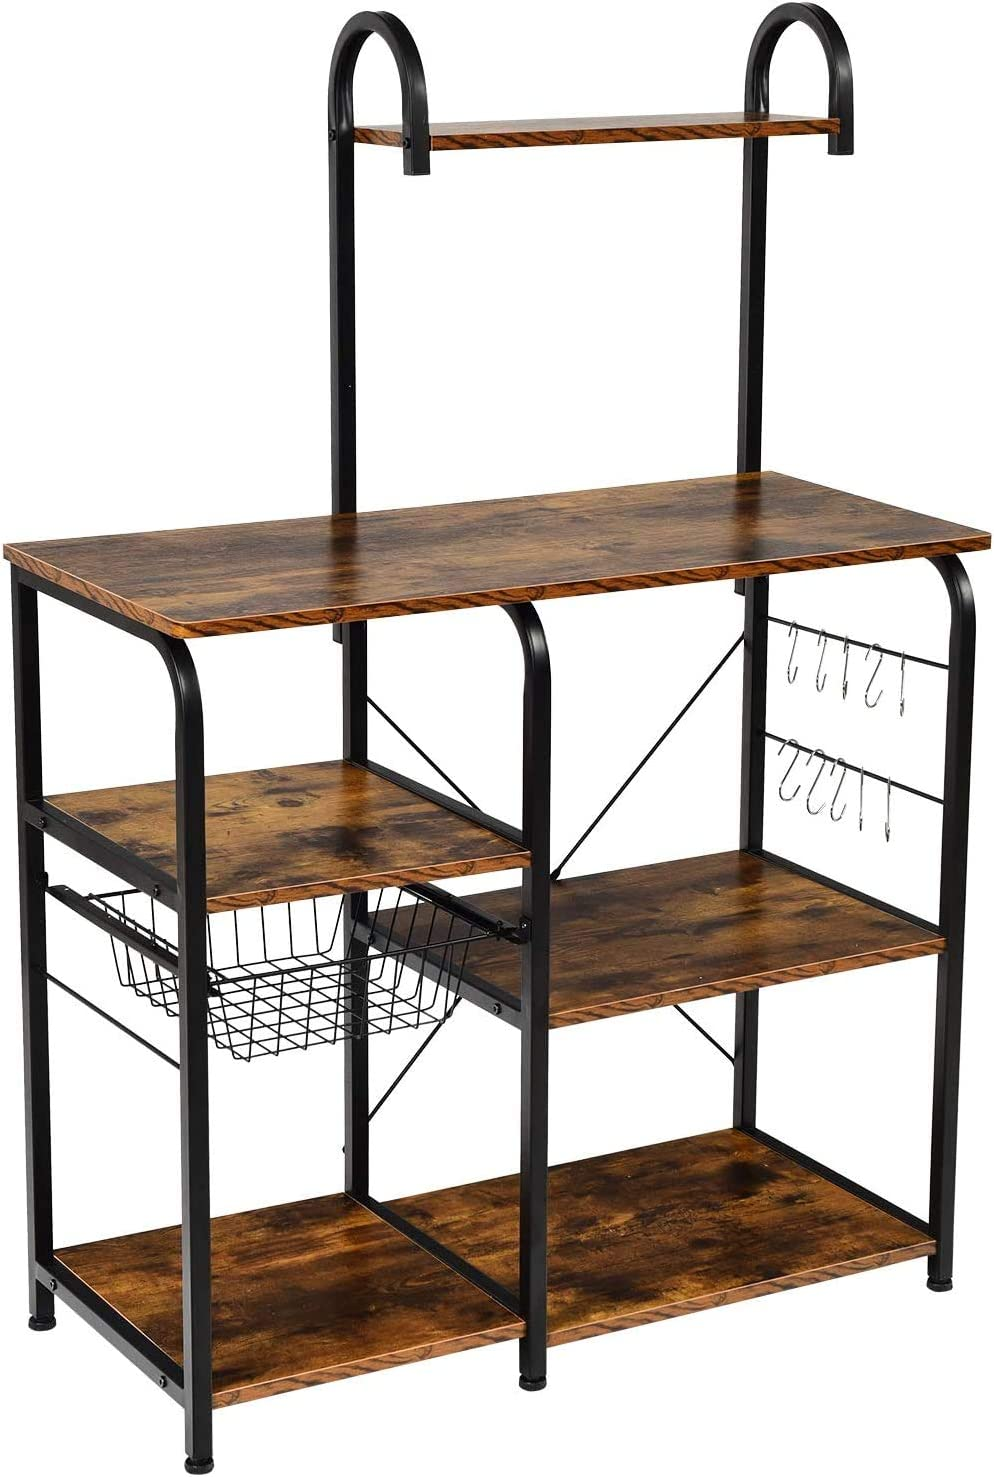 Vintage Kitchen Baker's Rack 35.5 Inches Microwave Oven Stand Workstation Shelf with 10 Hooks, 4+3 Tier Utility Storage Shelf for Spice Rack